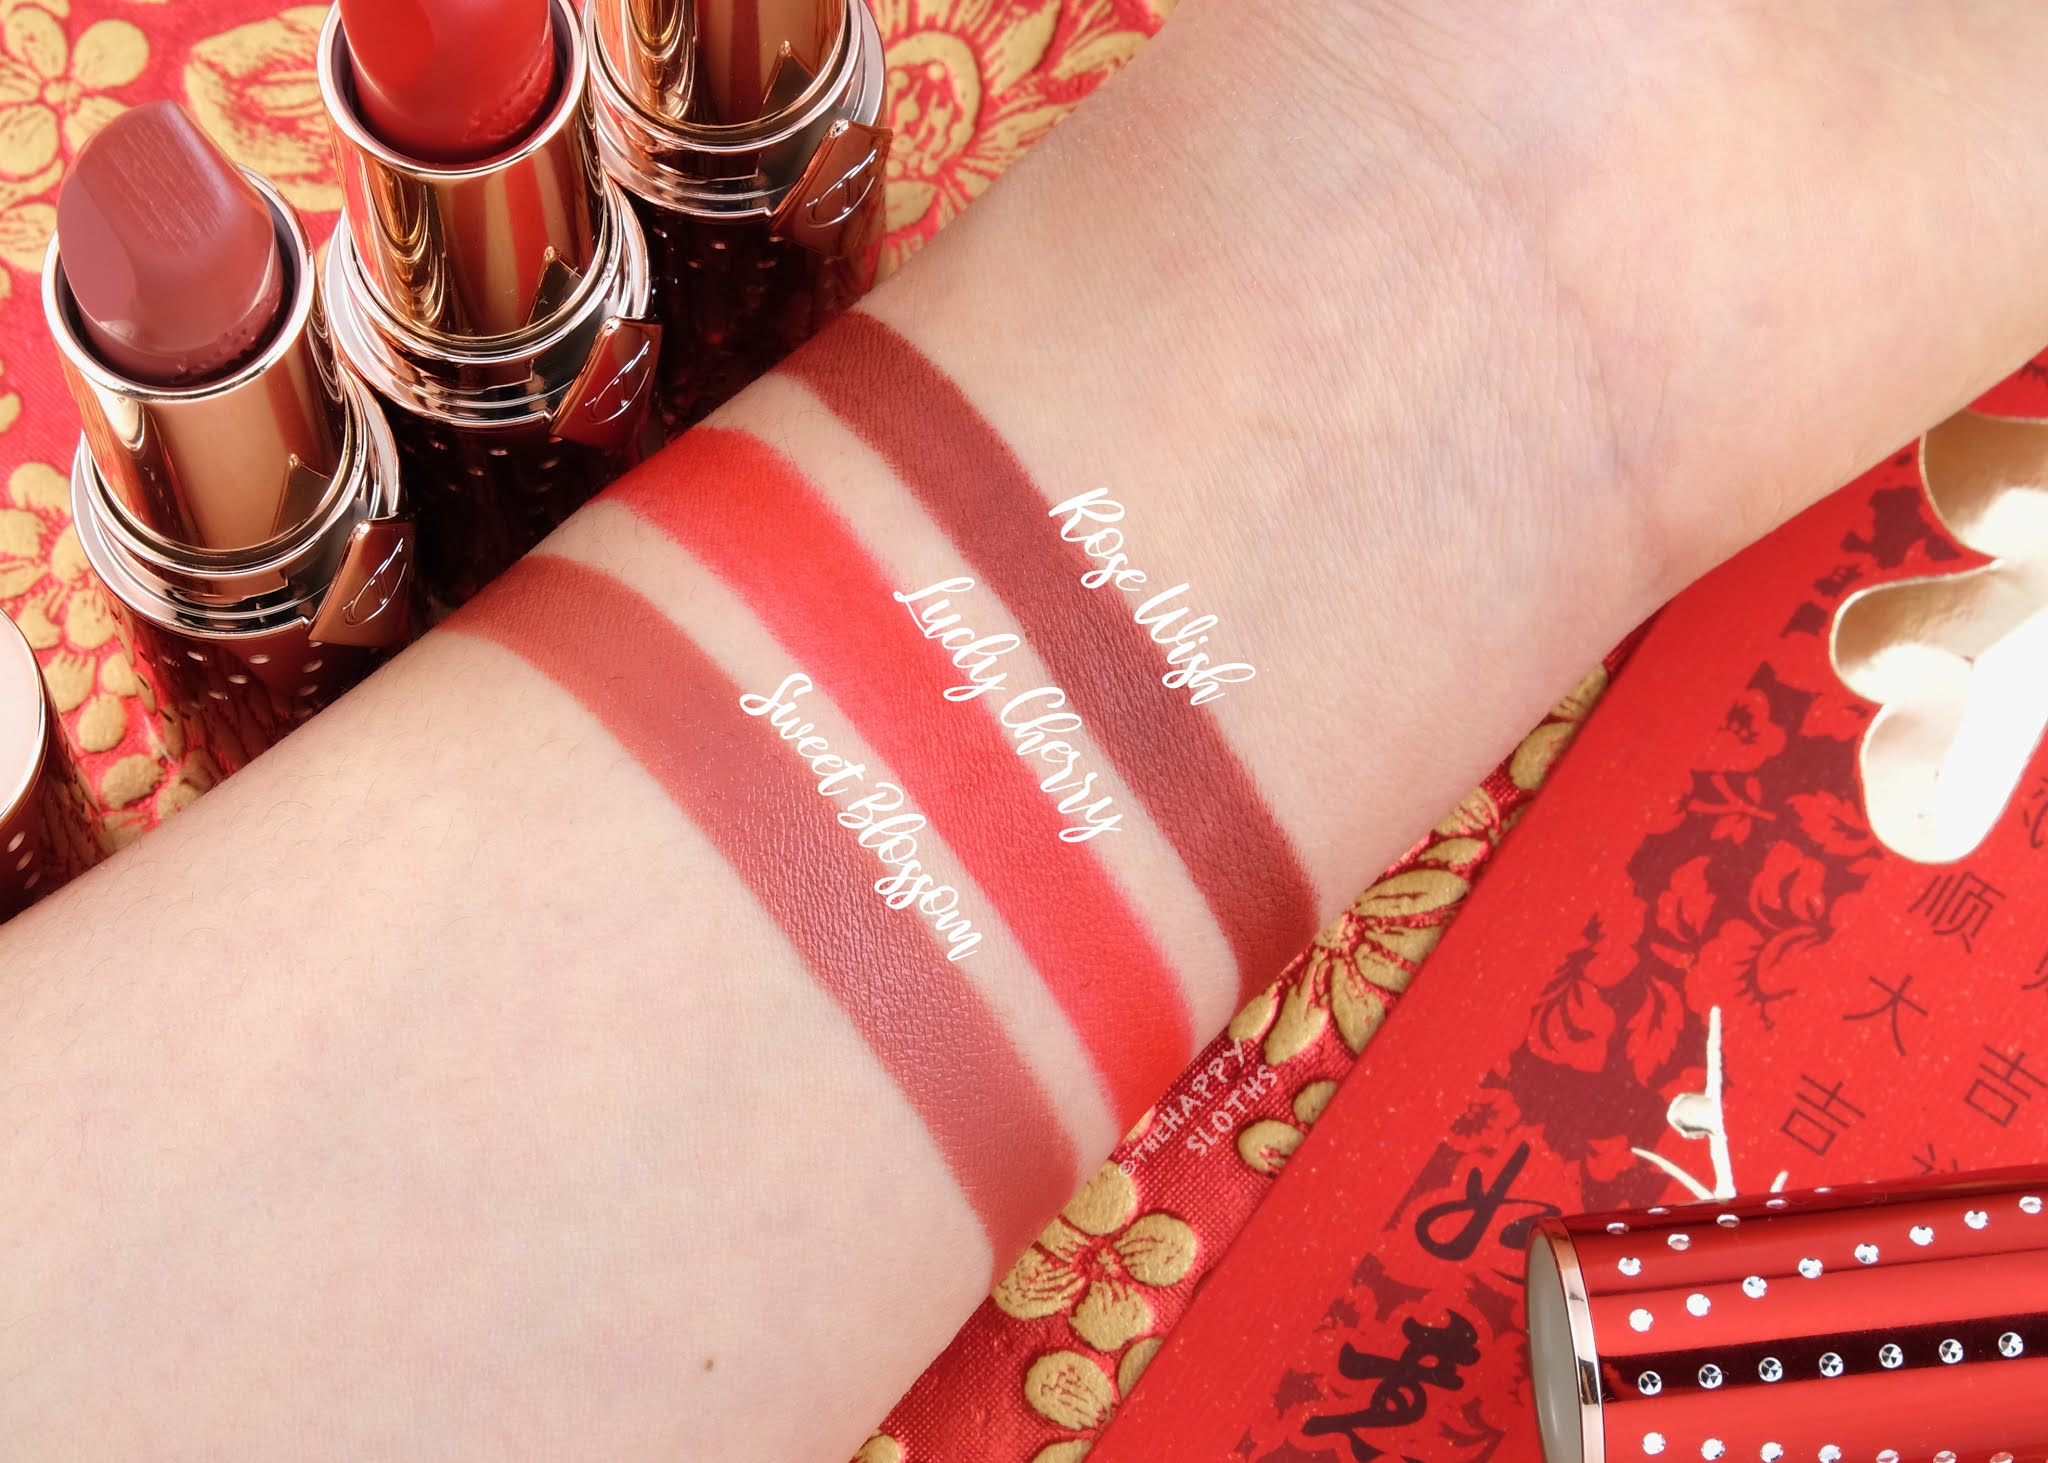 Charlotte Tilbury | Lunar New Year 2021 Lipsticks: Review and Swatches